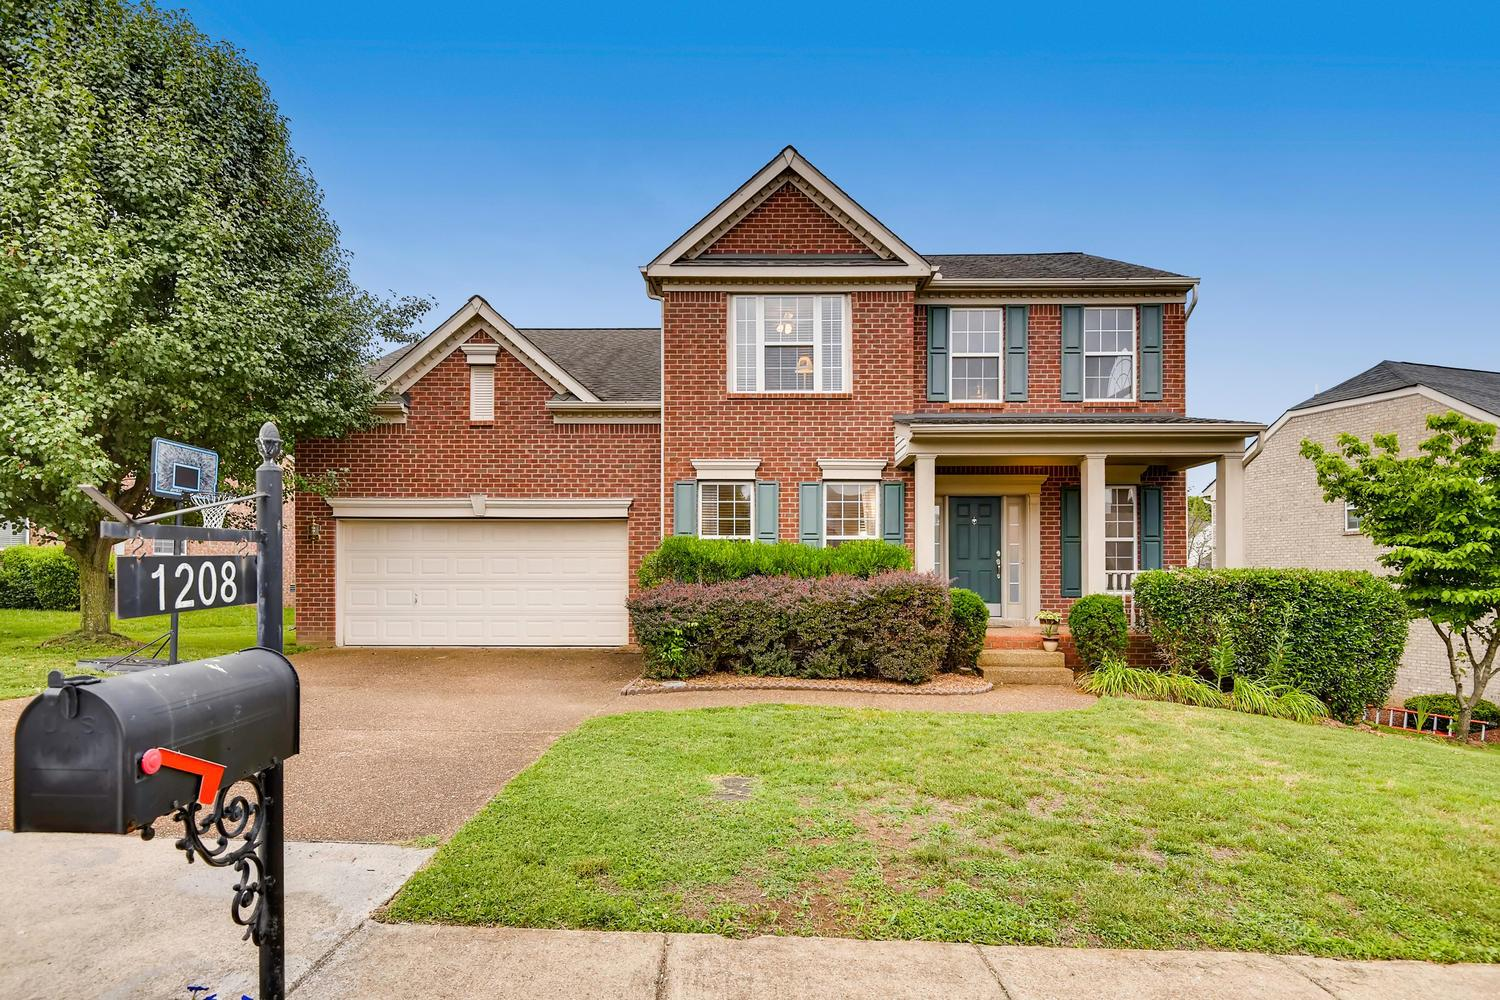 1208 Applecross Dr, Nashville, TN 37220 - Nashville, TN real estate listing